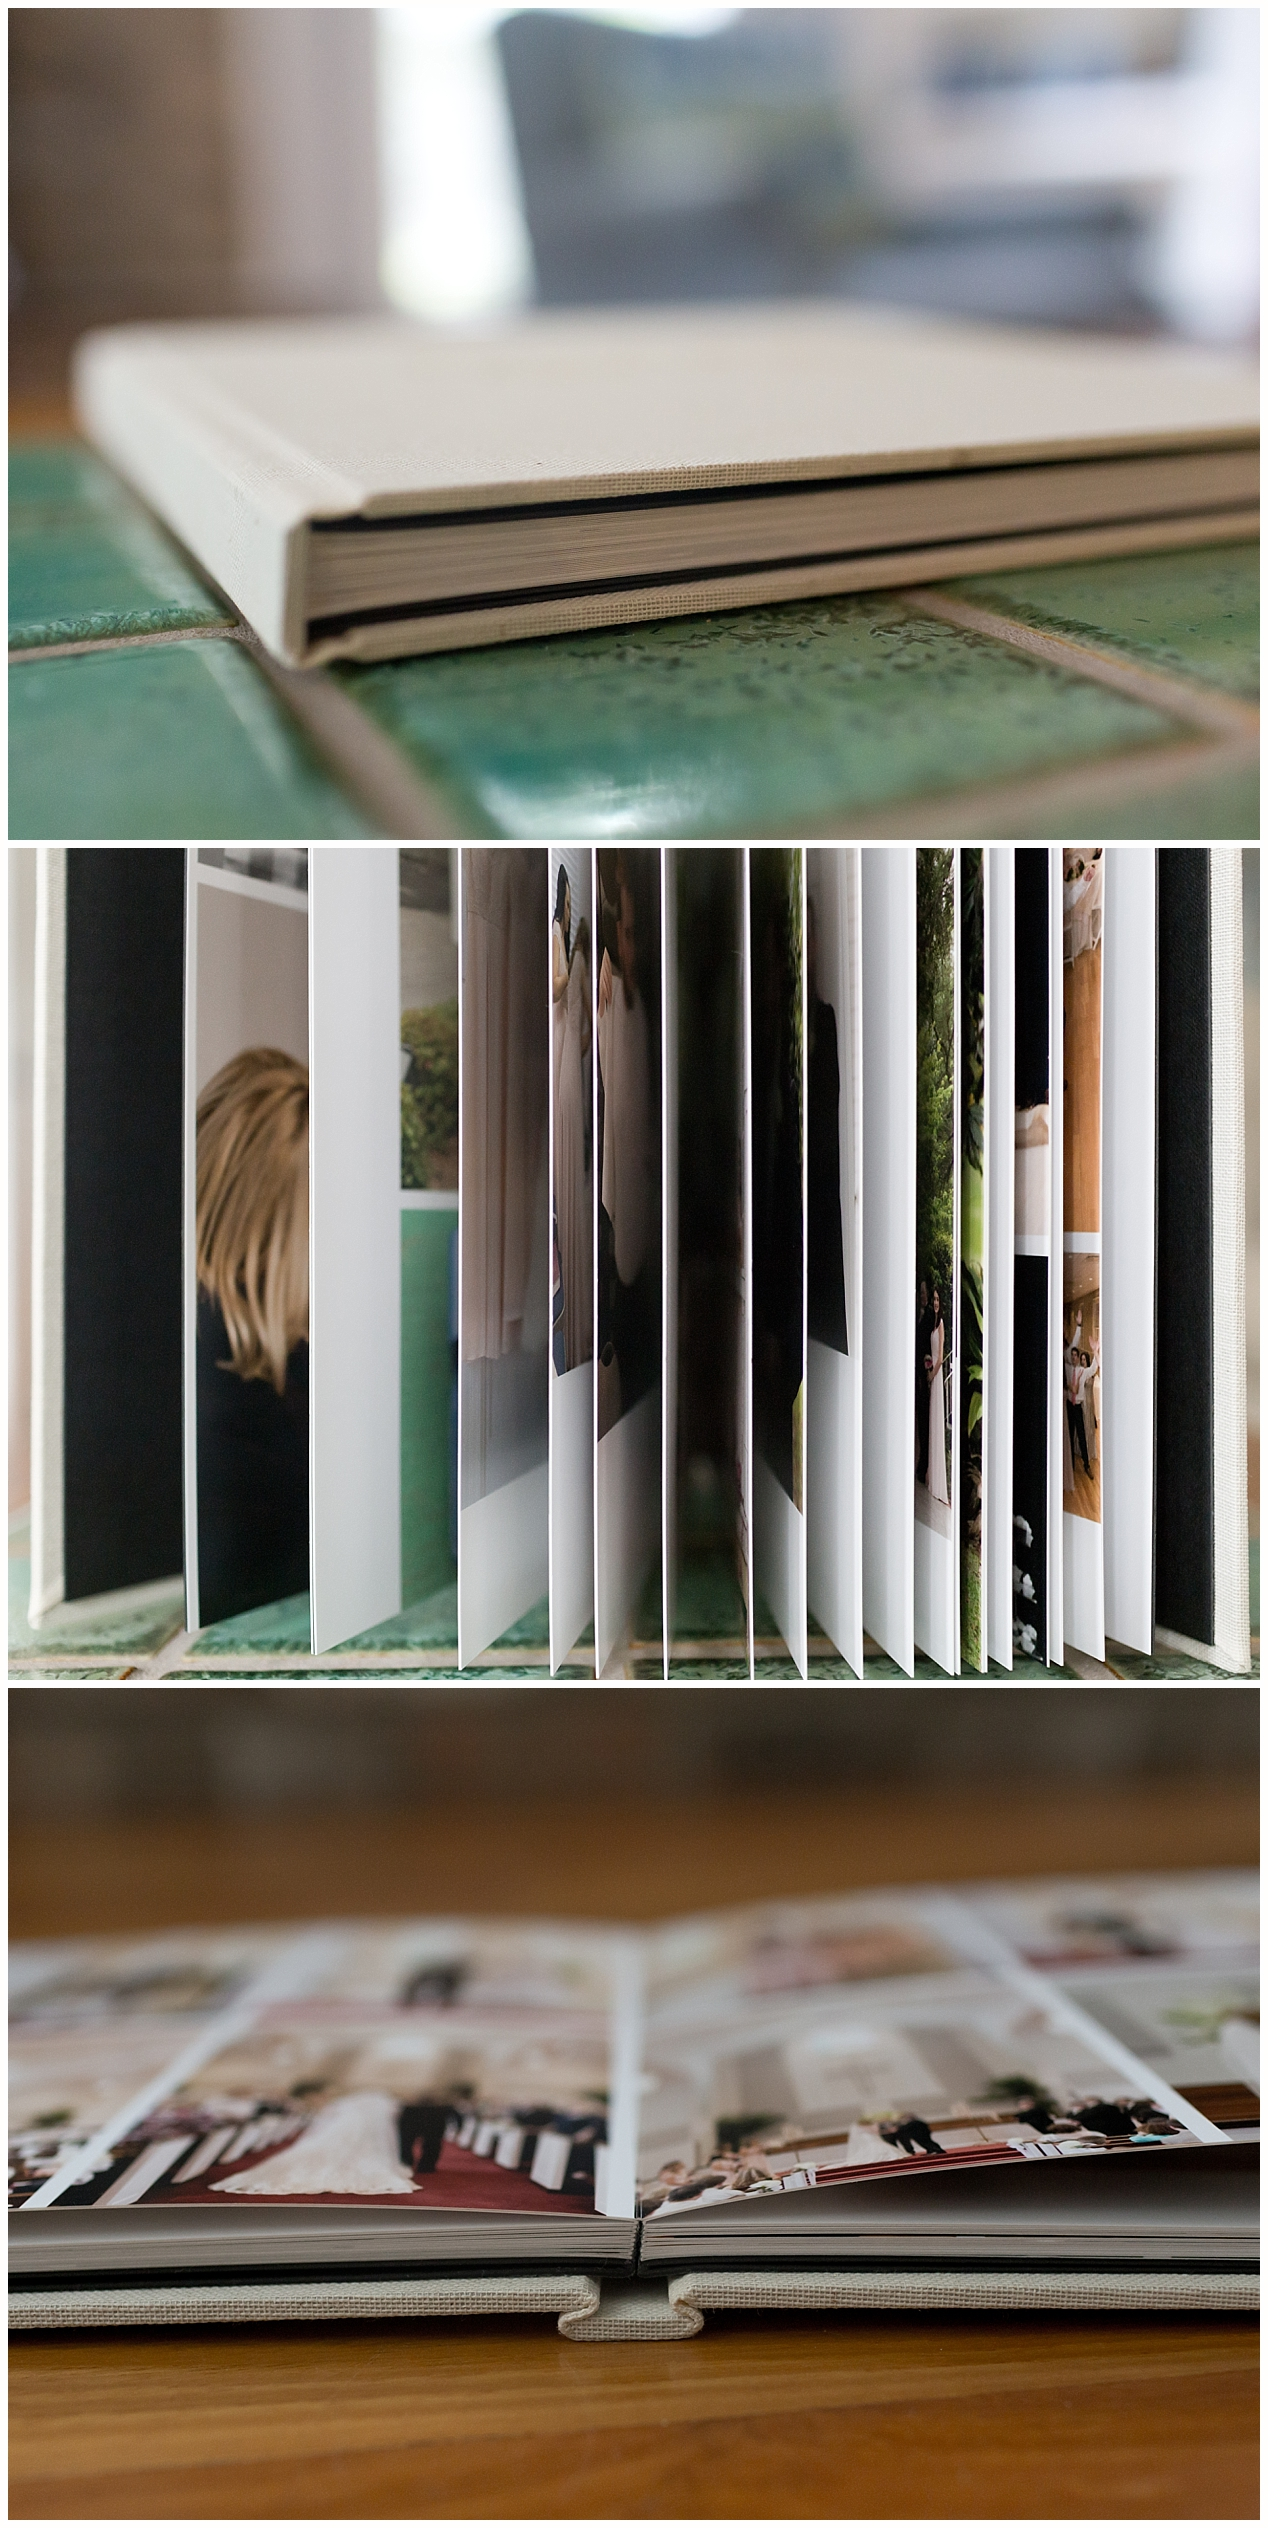 high-end layflat wedding album with linen cover - wedding photographer in Ocean Springs, MS